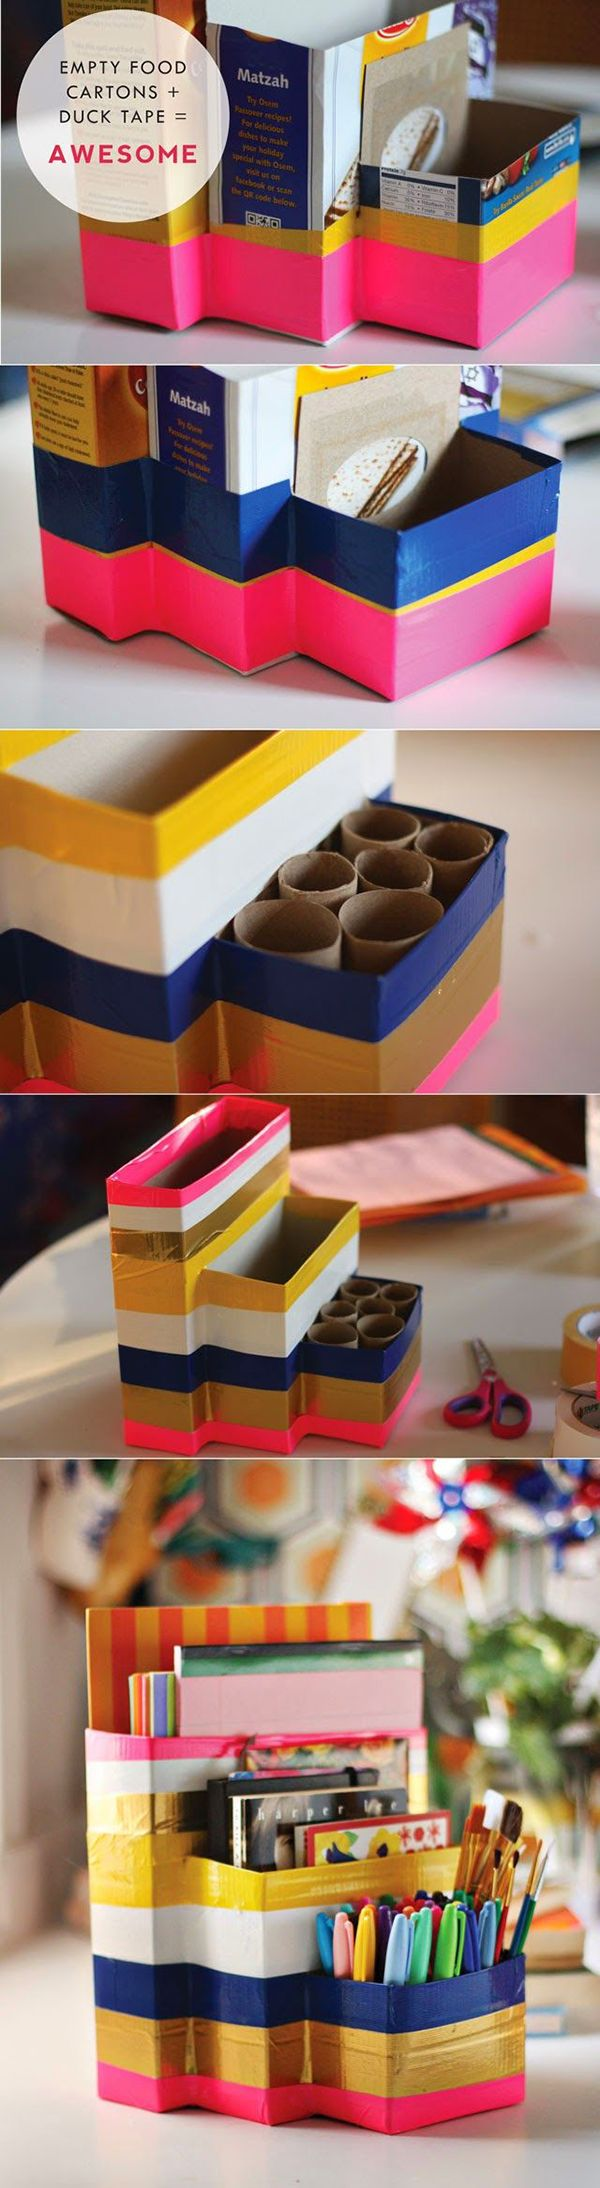 Easily the best organization ideas for school I've seen on Pinterest so far